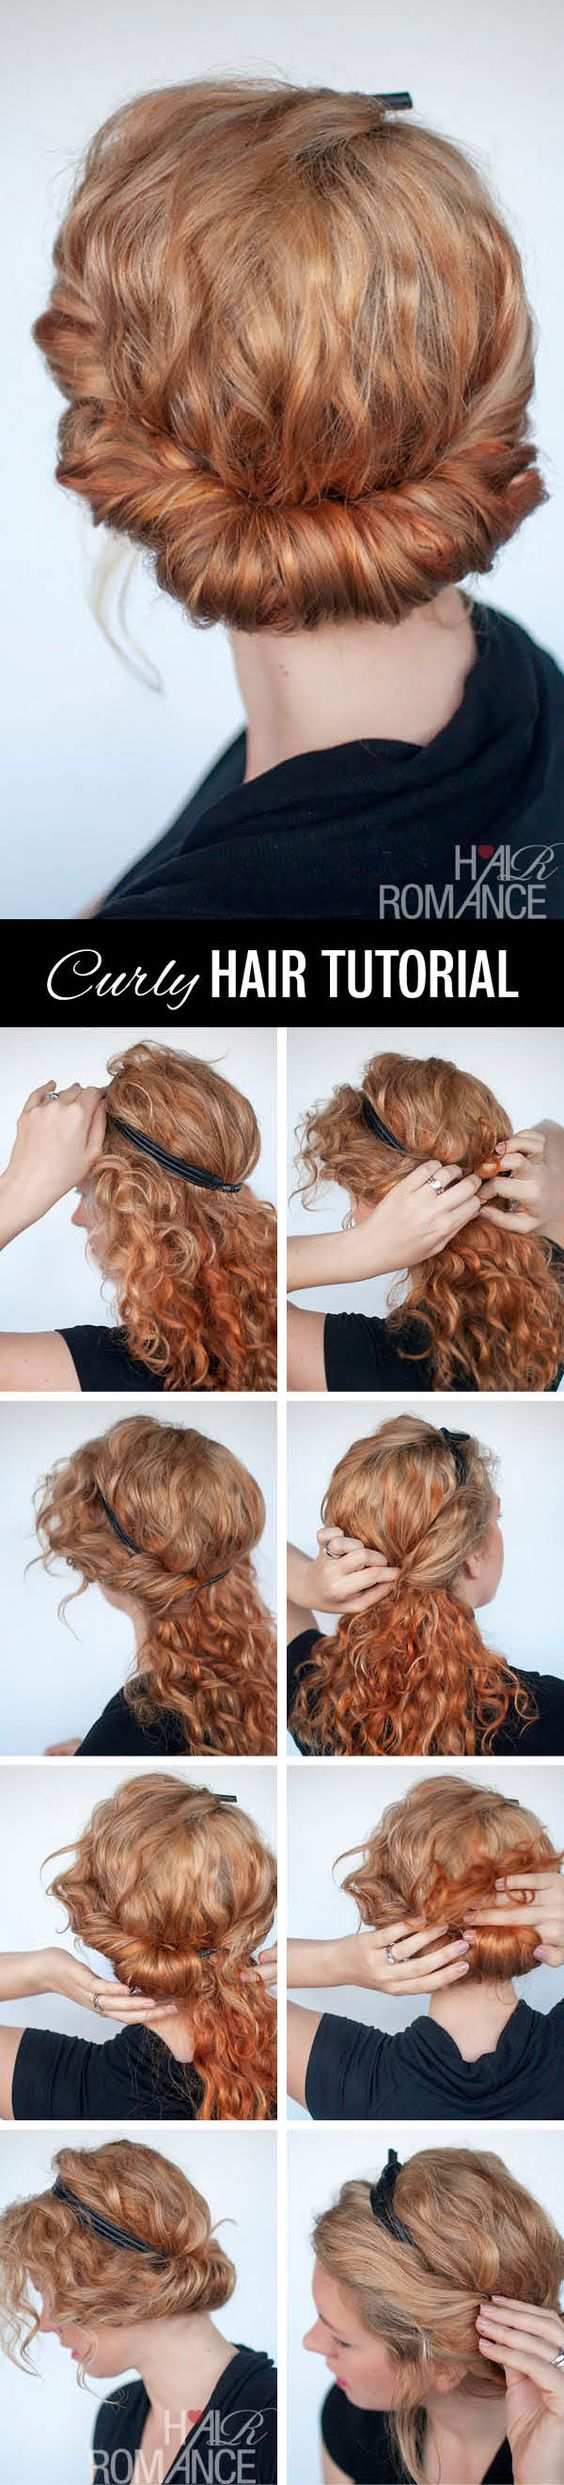 15 Easy Hair Tutorials For Curly